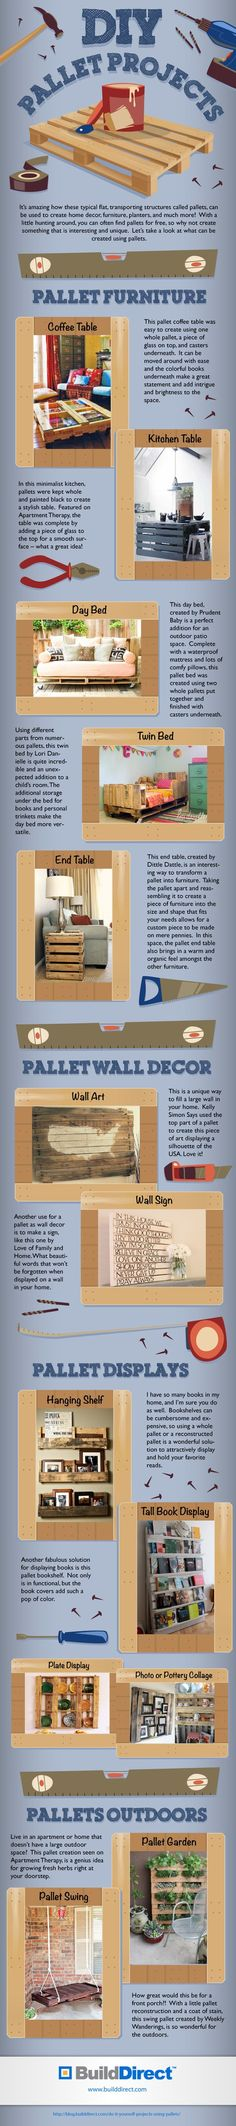 DIY Pallet Projects [Infographic] | ecogreenlove